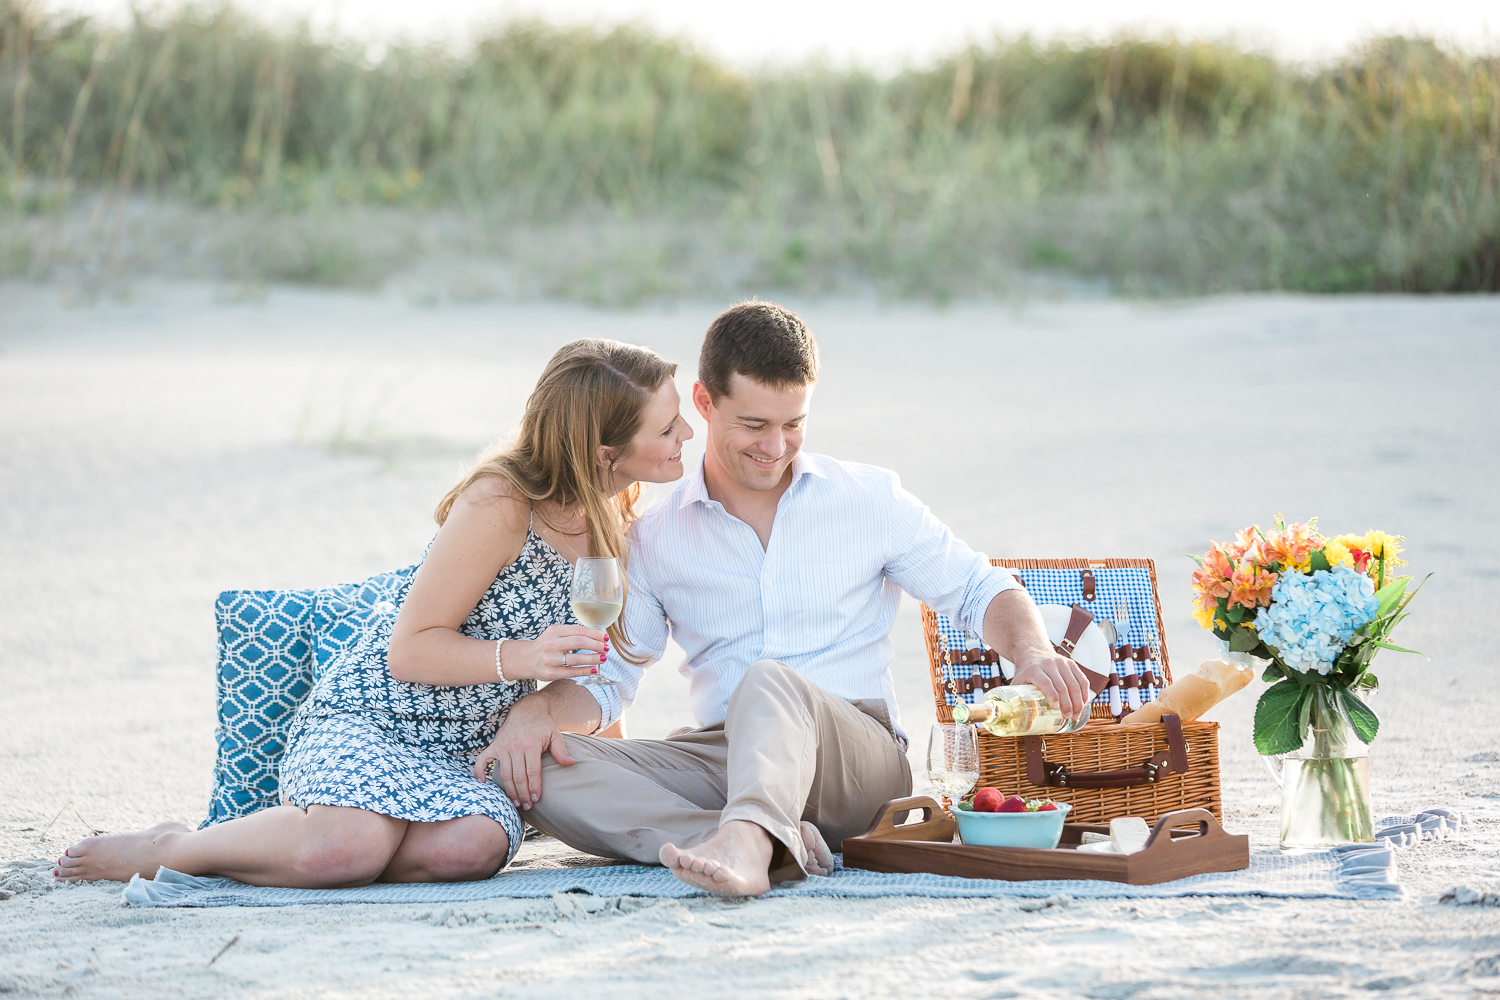 picnic at the beach with engaged couple